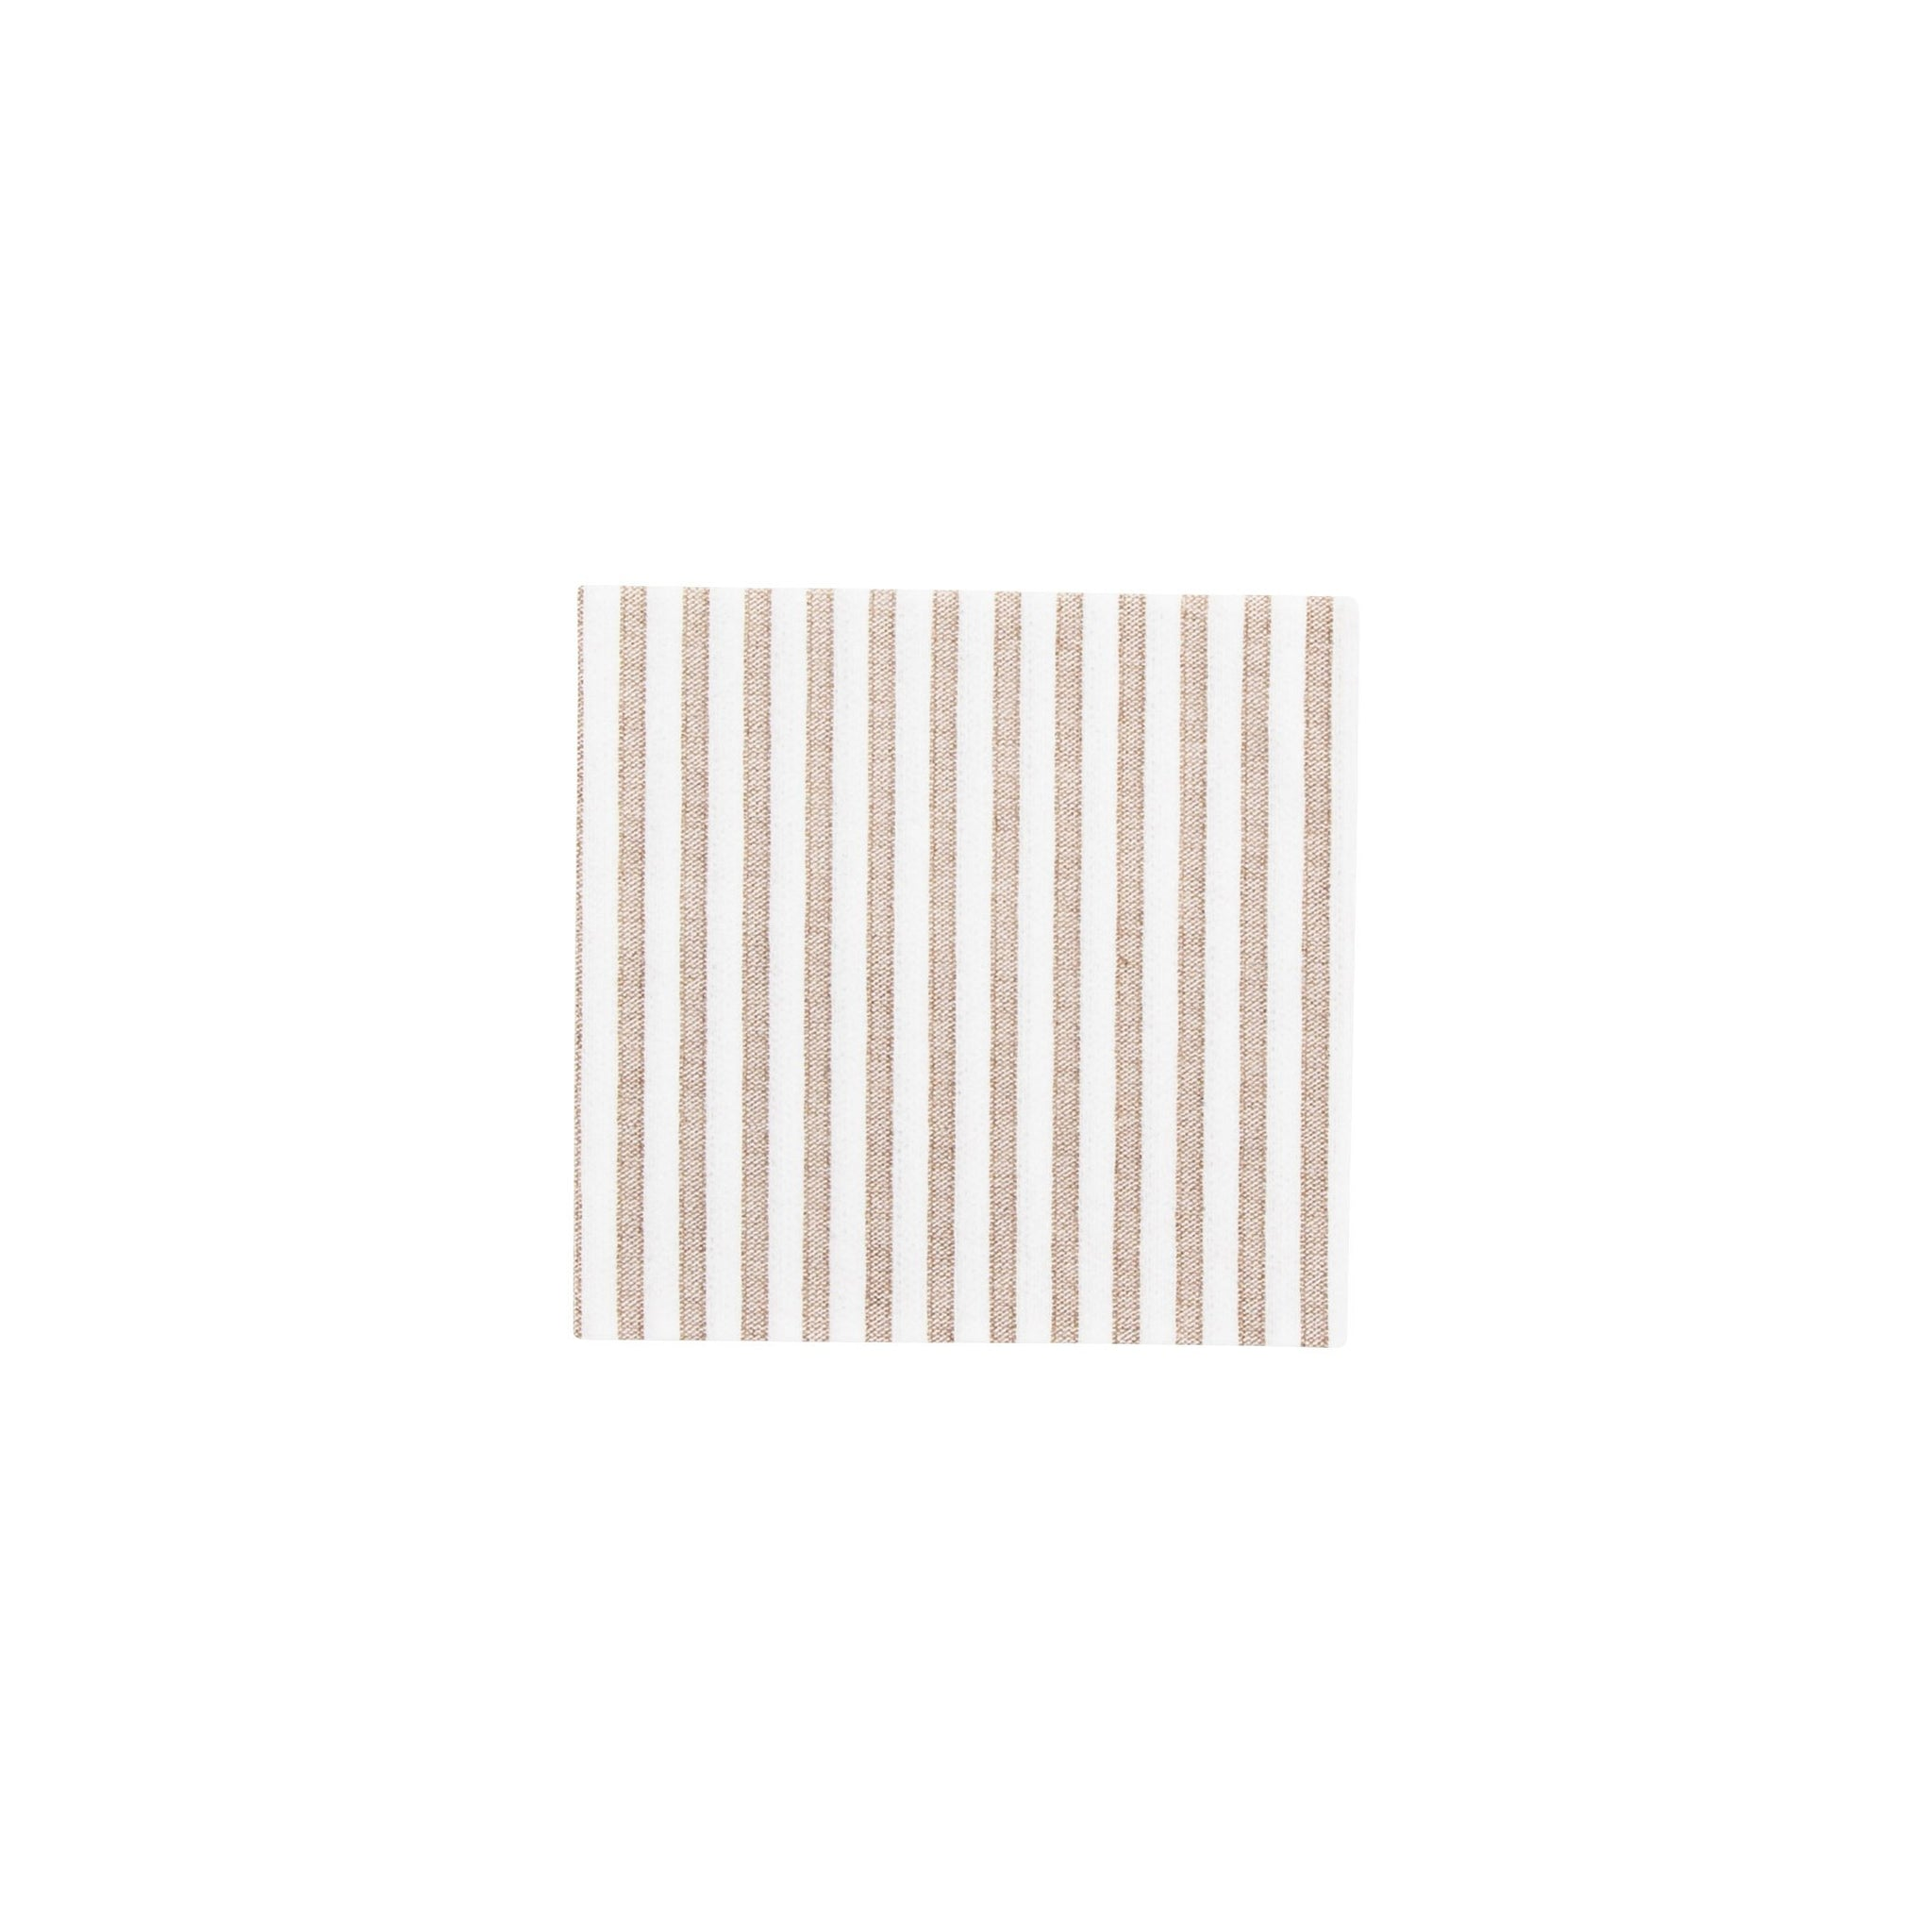 Papersoft Napkins Capri Brown Cocktail Napkins (Pack of 20)